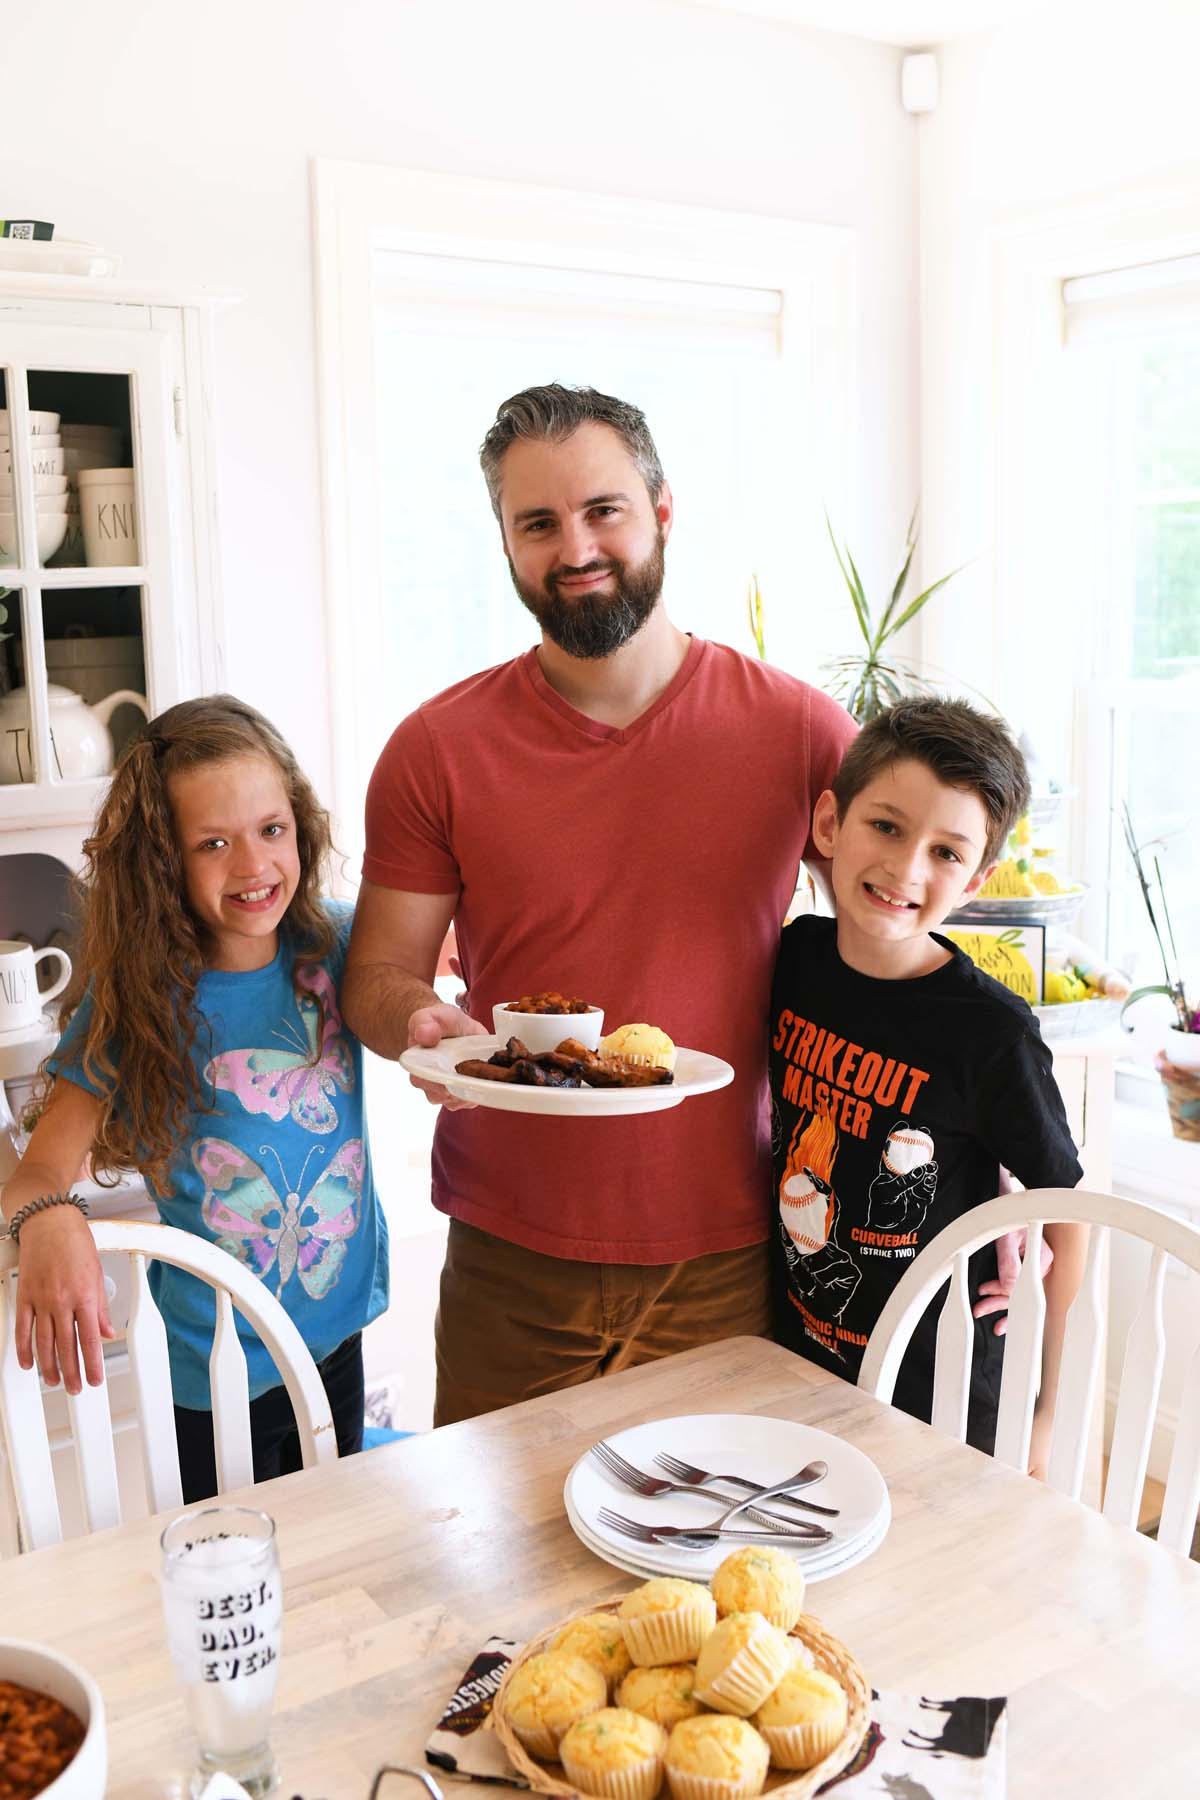 A man with a son and daughter smiling with food.